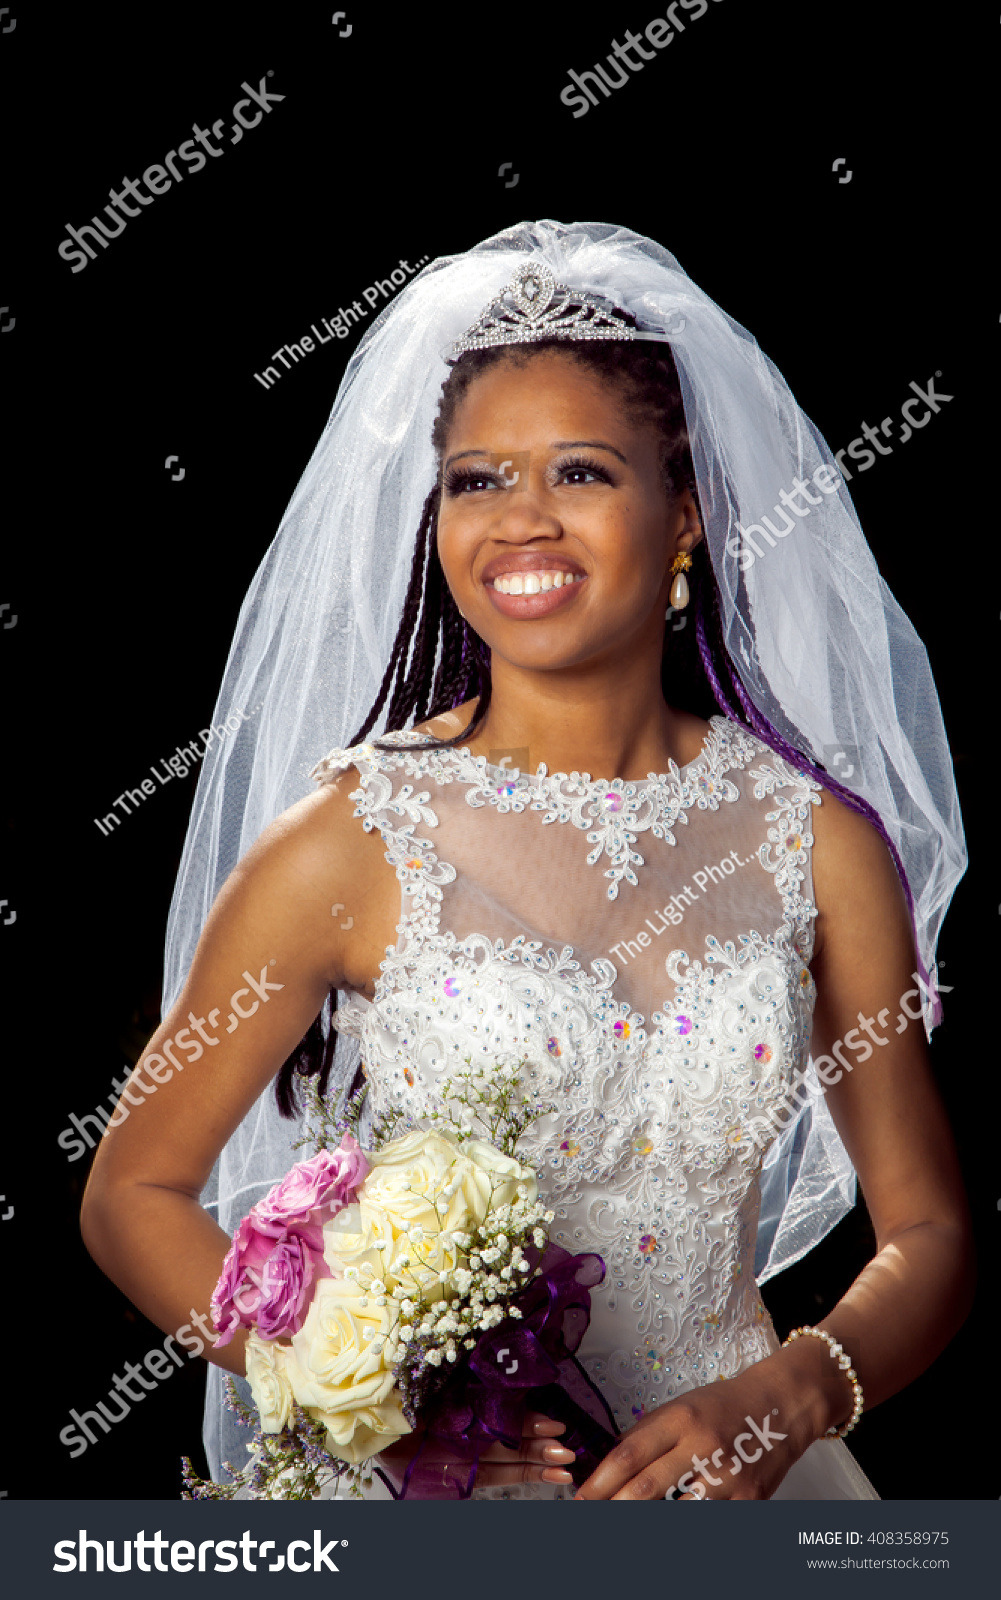 https://image.shutterstock.com/z/stock-photo-portrait-of-a-beautiful-african-american-bride-on-her-wedding-day-black-background-with-a-back-408358975.jpg